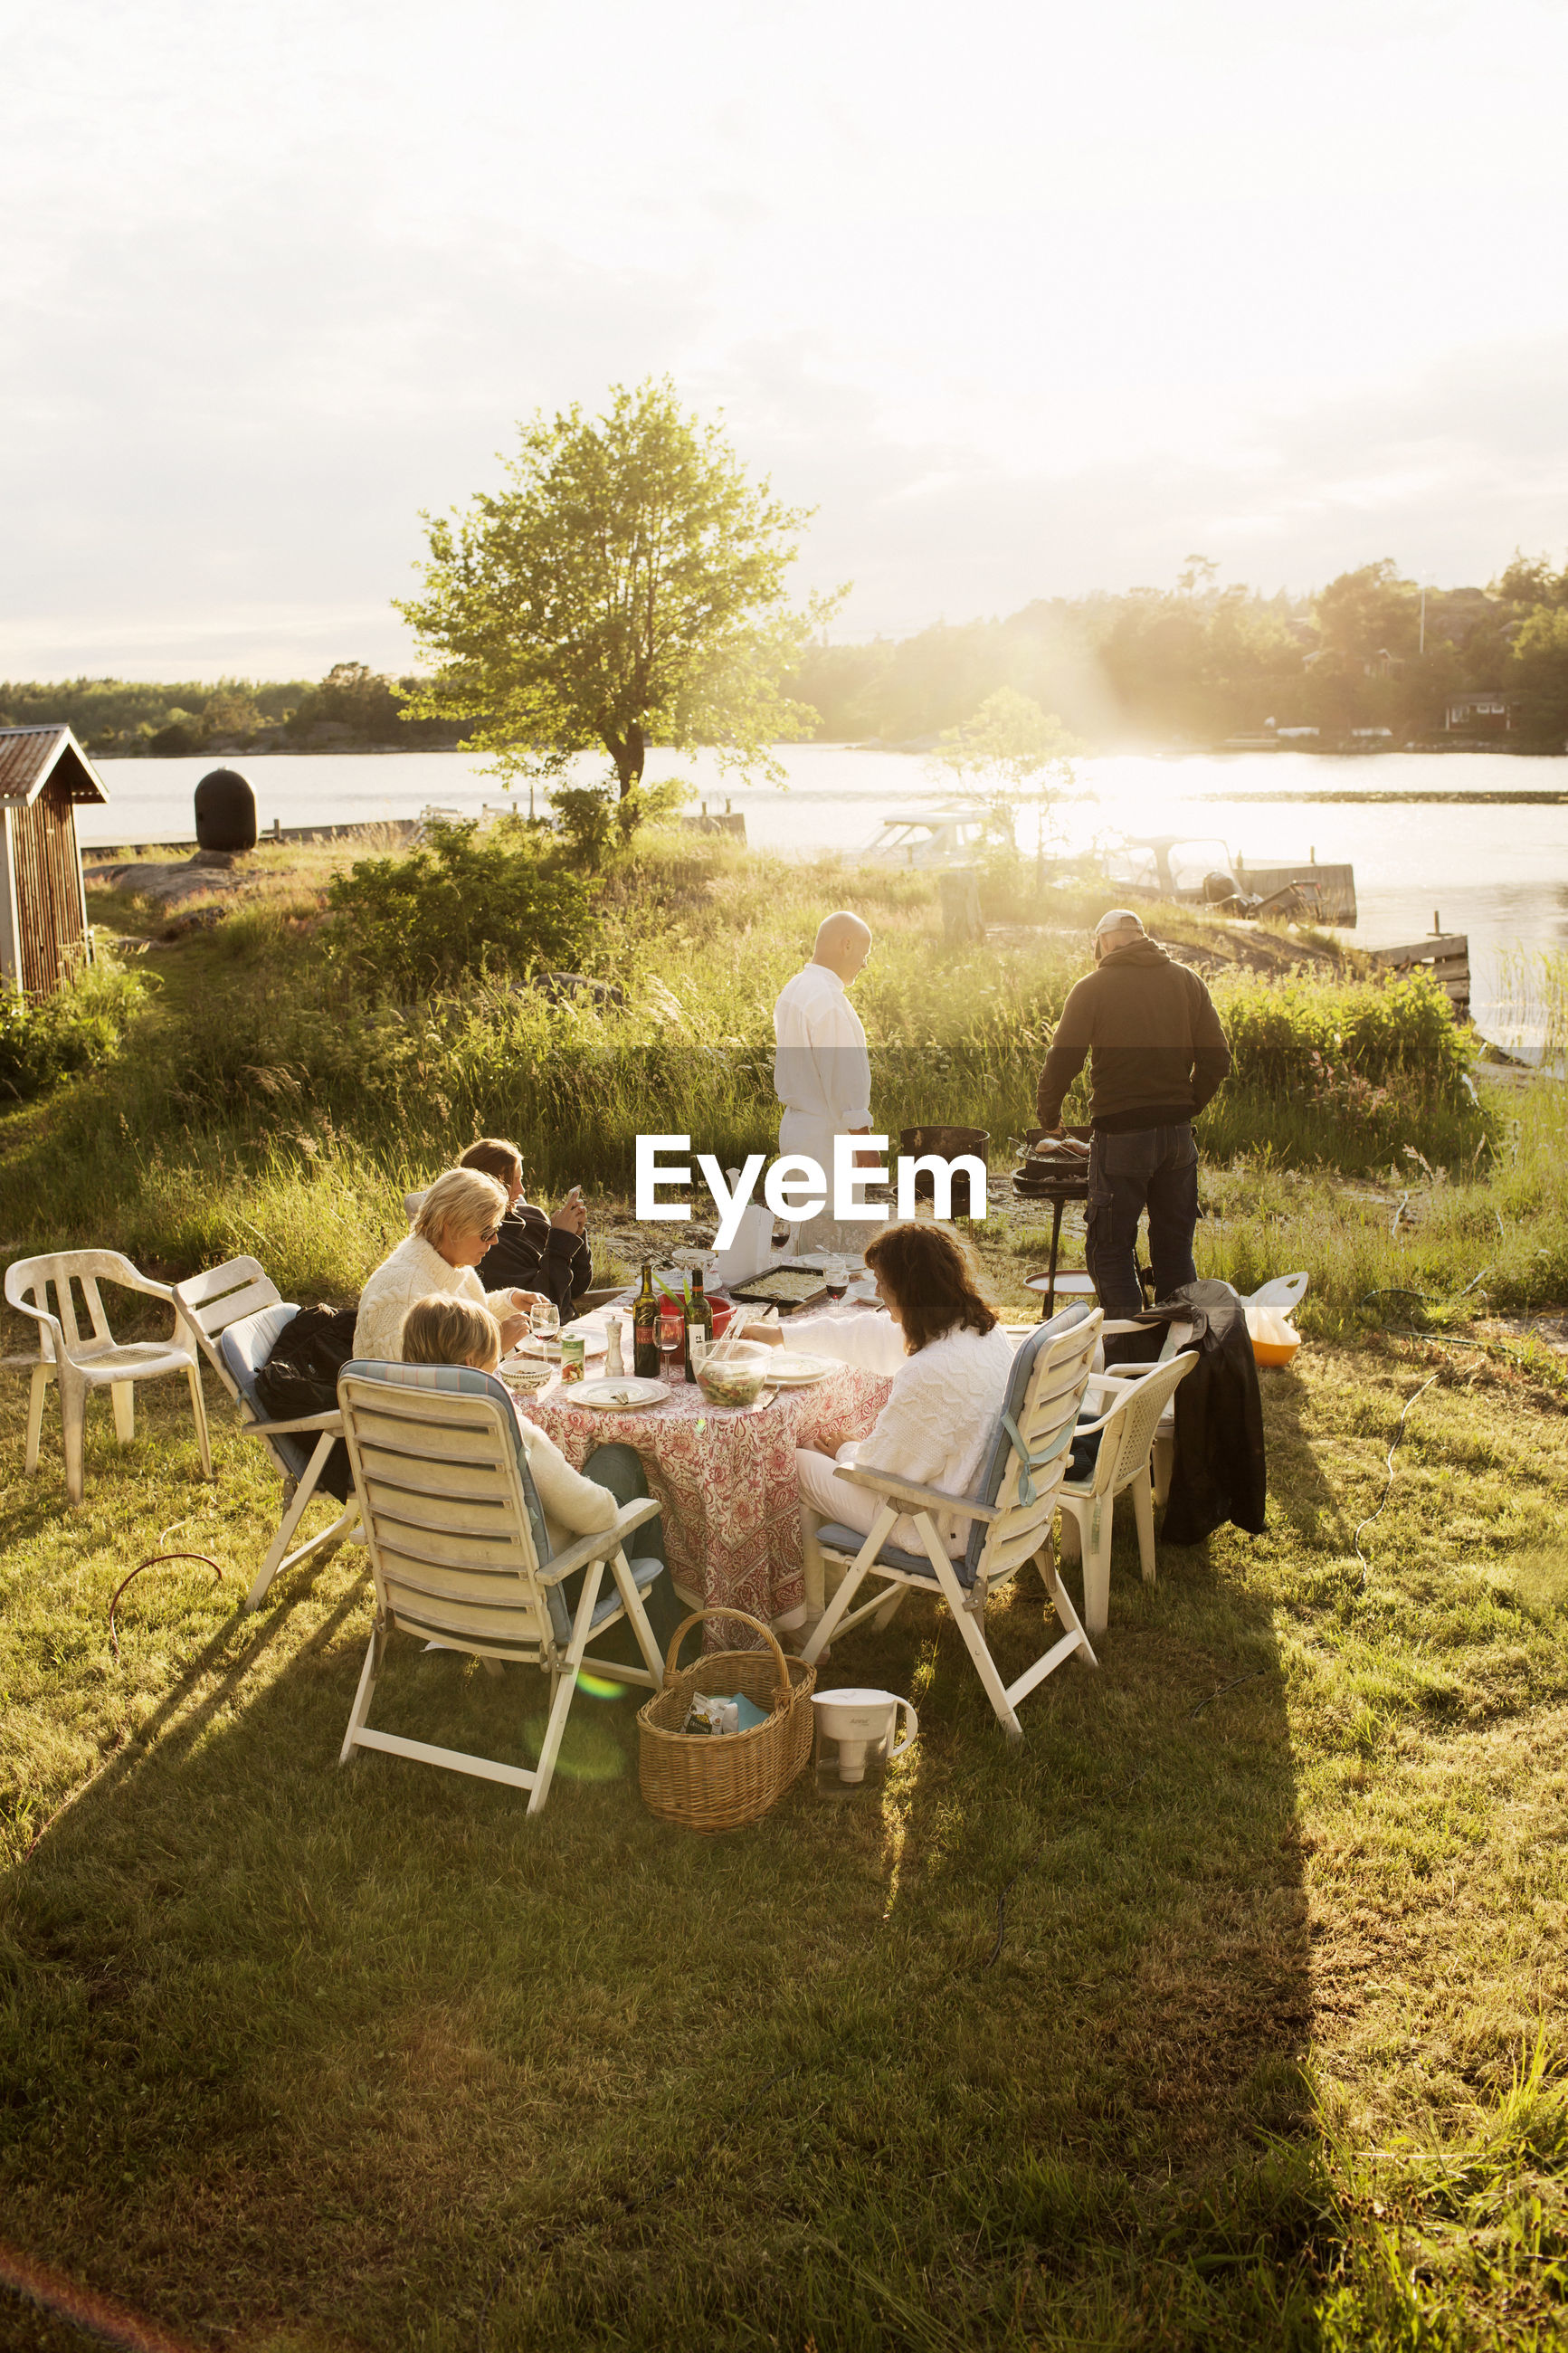 GROUP OF PEOPLE SITTING ON TABLE AT FARM